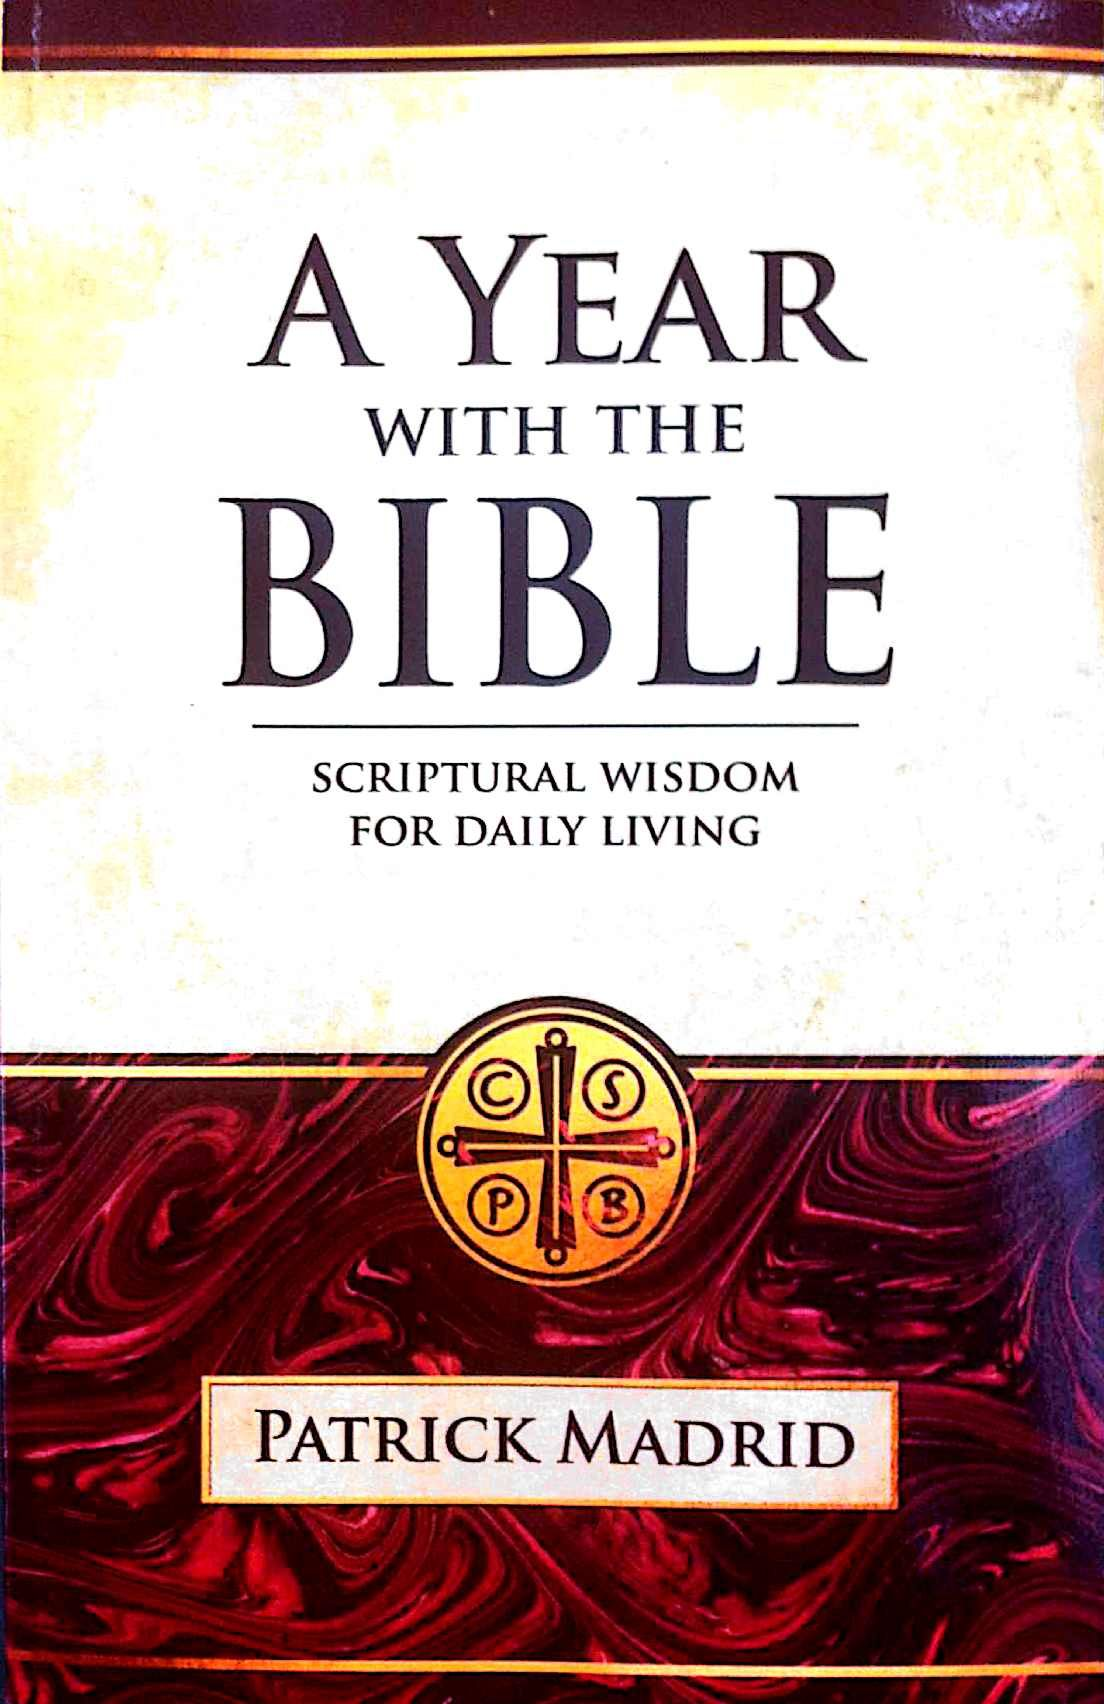 A Year with the Bible: Scriptural Wisdom for Daily Living / Patrick Madrid